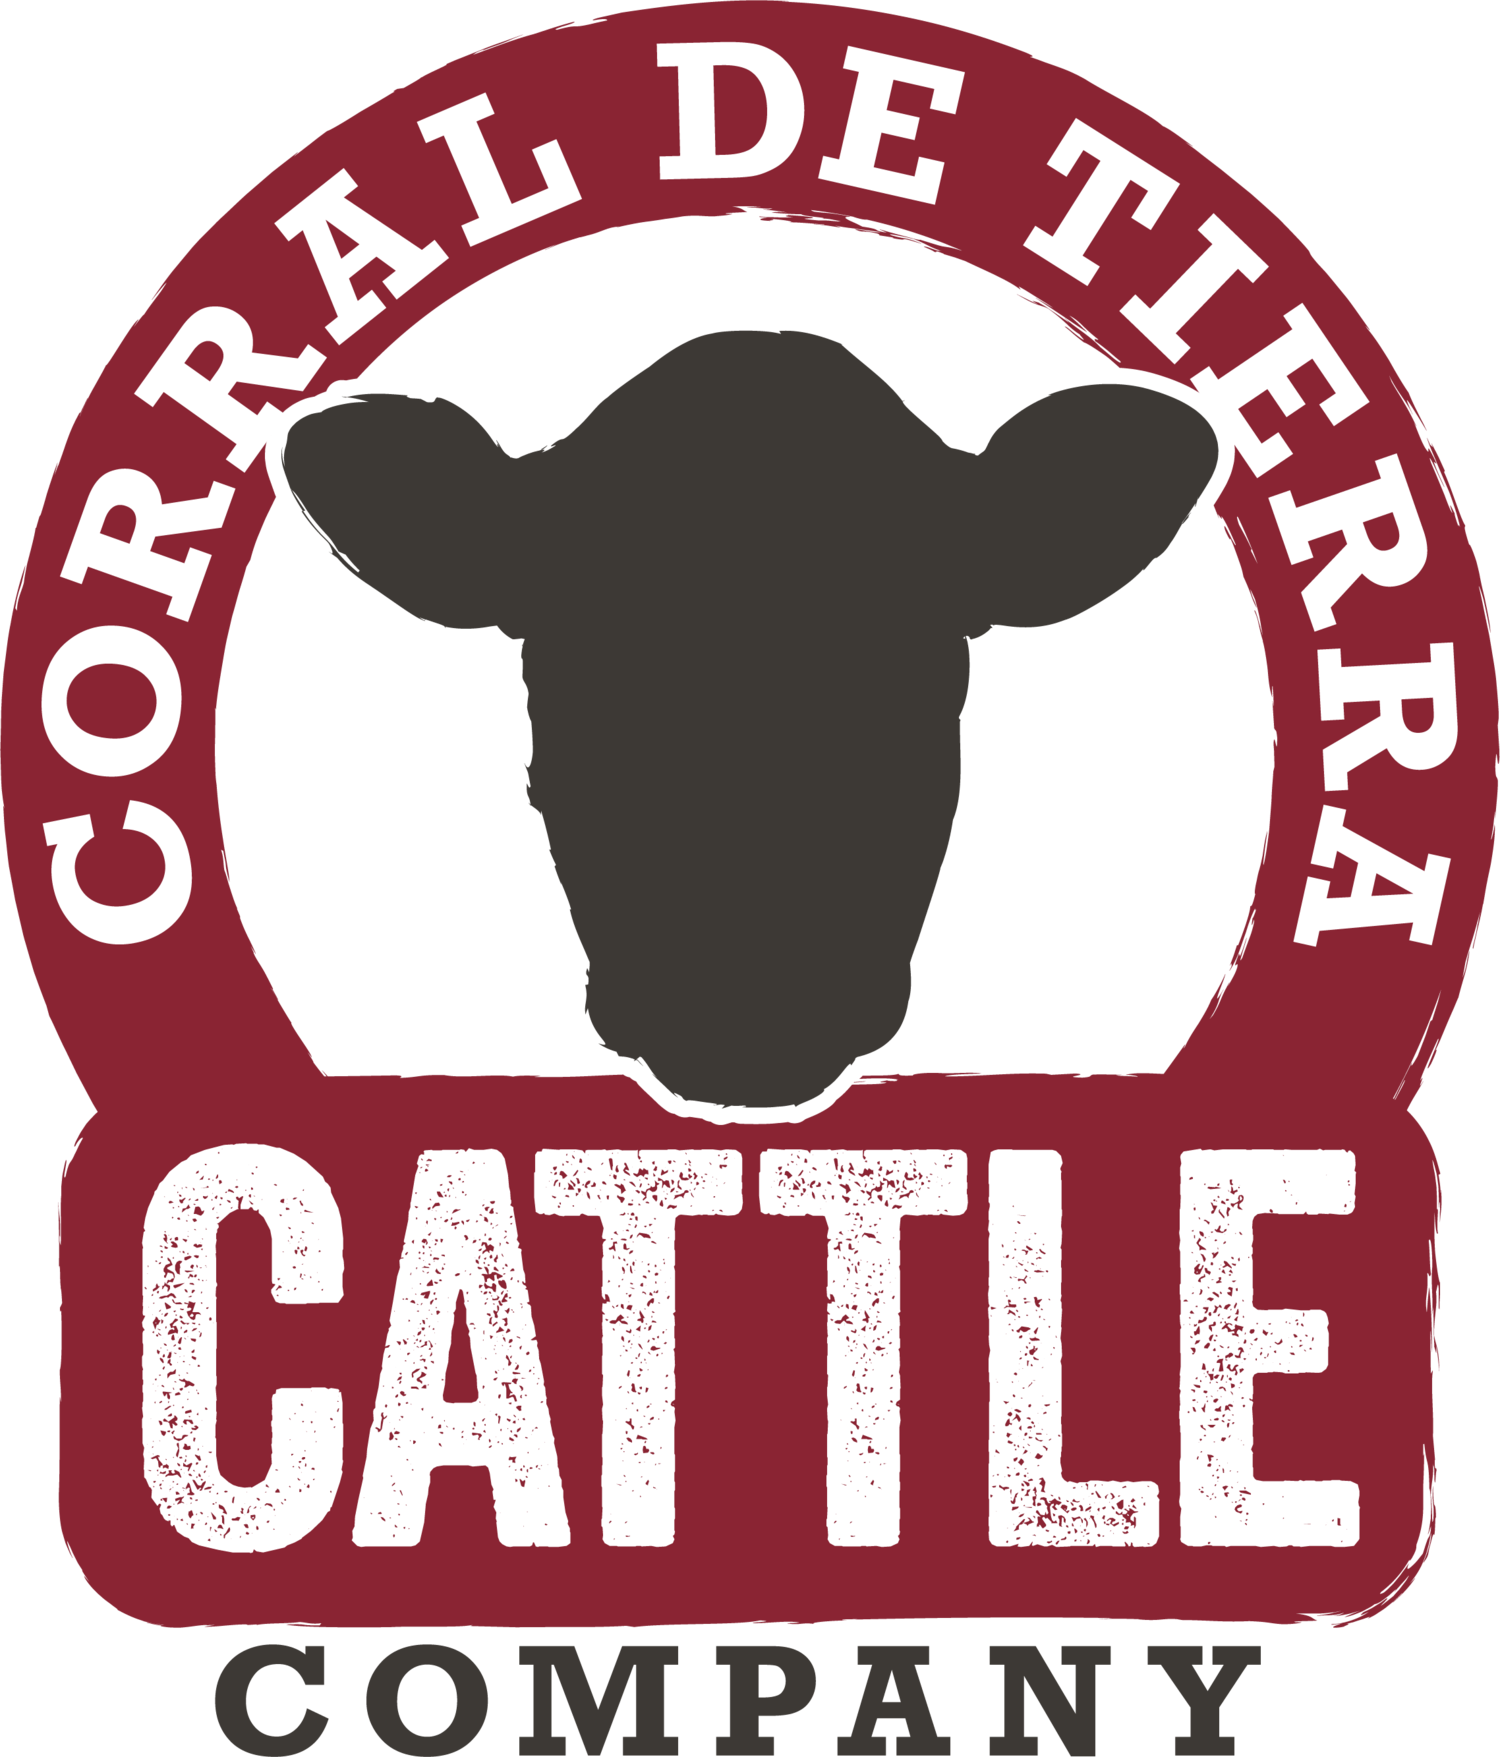 CORRAL DE TIERRA CATTLE CO.